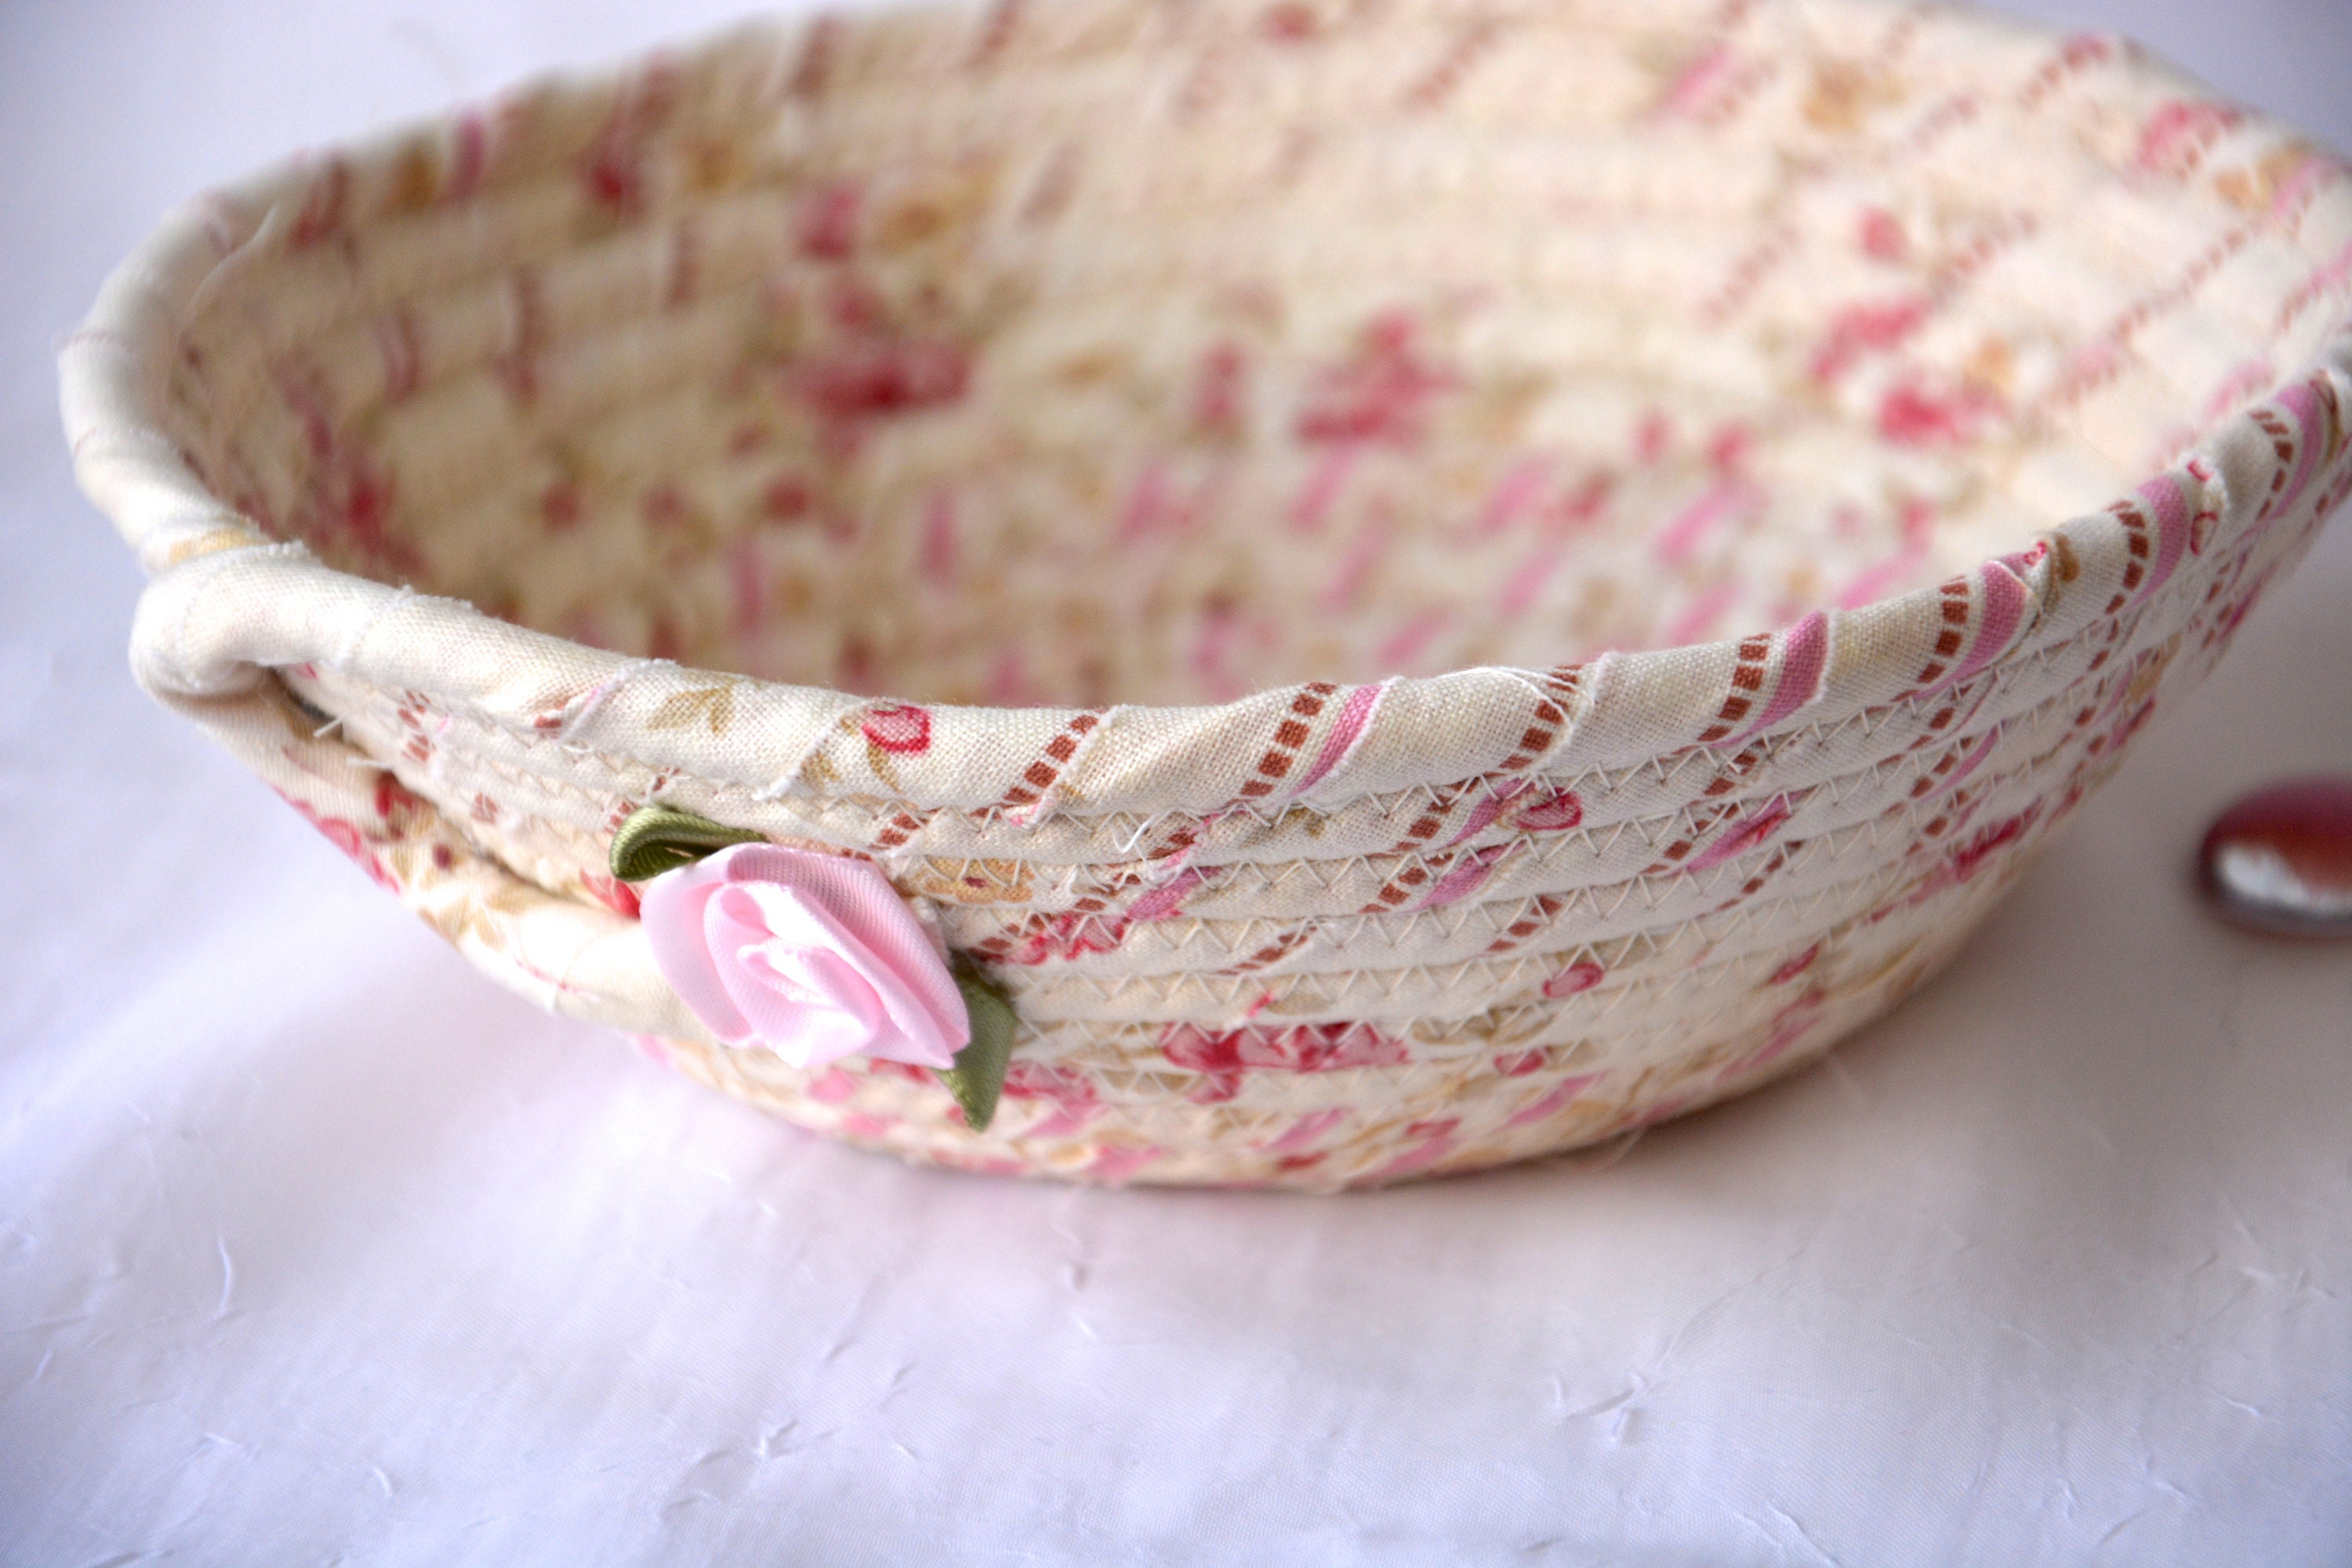 Pink Ring Dish Shabby Chic Basket Handmade Pink Potpourri Bowl Cute Desk Accessory English Garden Candy Dish Key Tray,Where To Find Houses For Rent